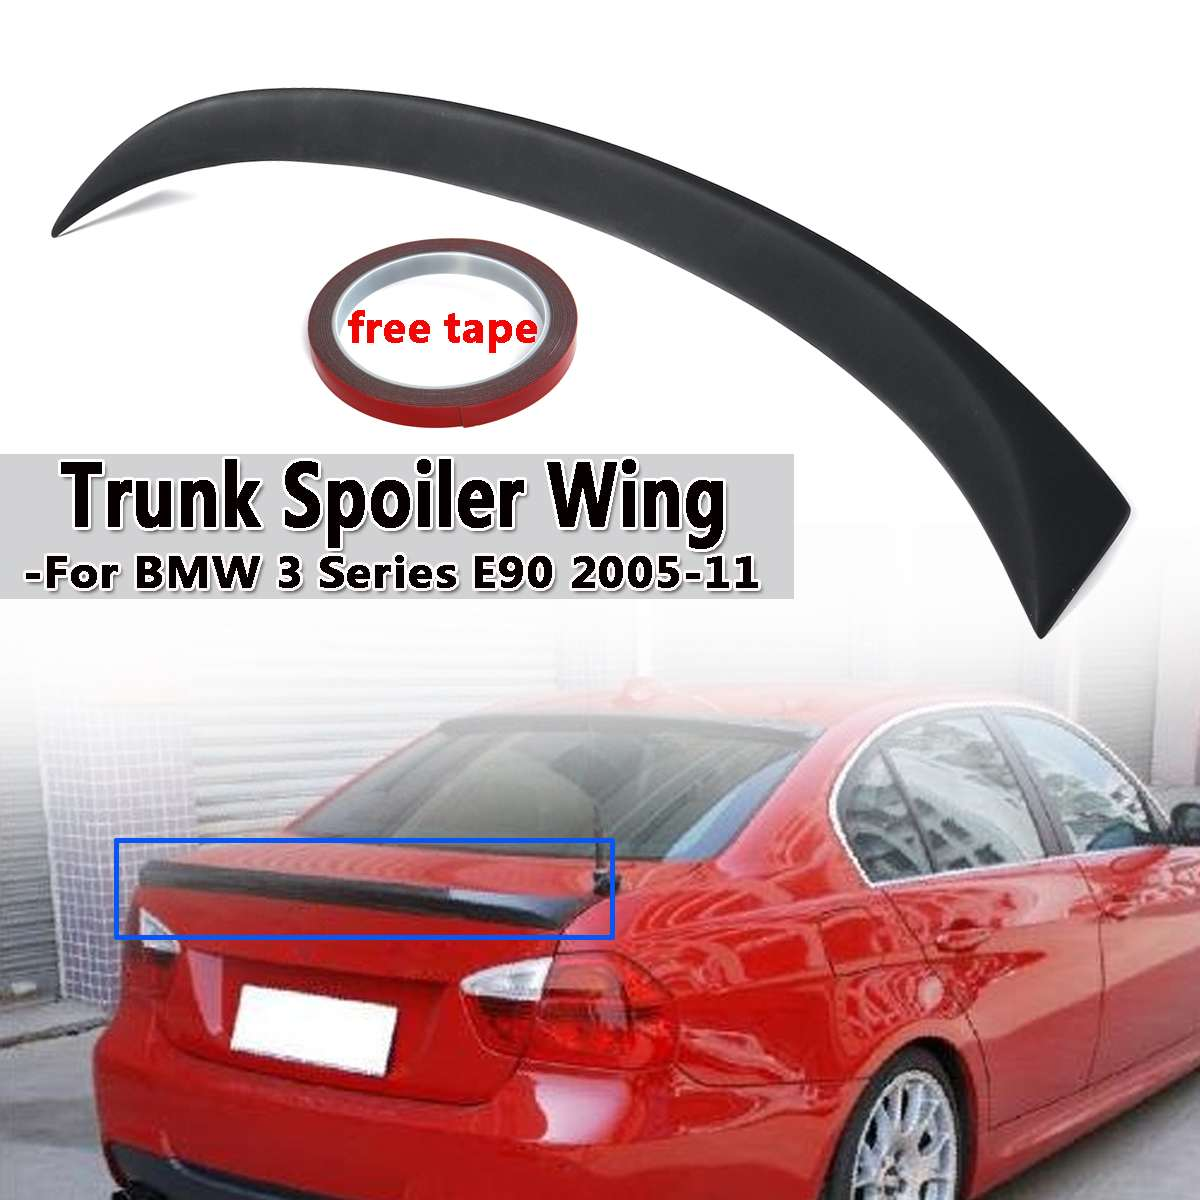 ABS Plastic Car Trunk Spoiler Wing For BMW 3 Series E90 2005-2011 Rear Wing Spoiler Rear Trunk Roof Wing Bright Black 120cmABS Plastic Car Trunk Spoiler Wing For BMW 3 Series E90 2005-2011 Rear Wing Spoiler Rear Trunk Roof Wing Bright Black 120cm